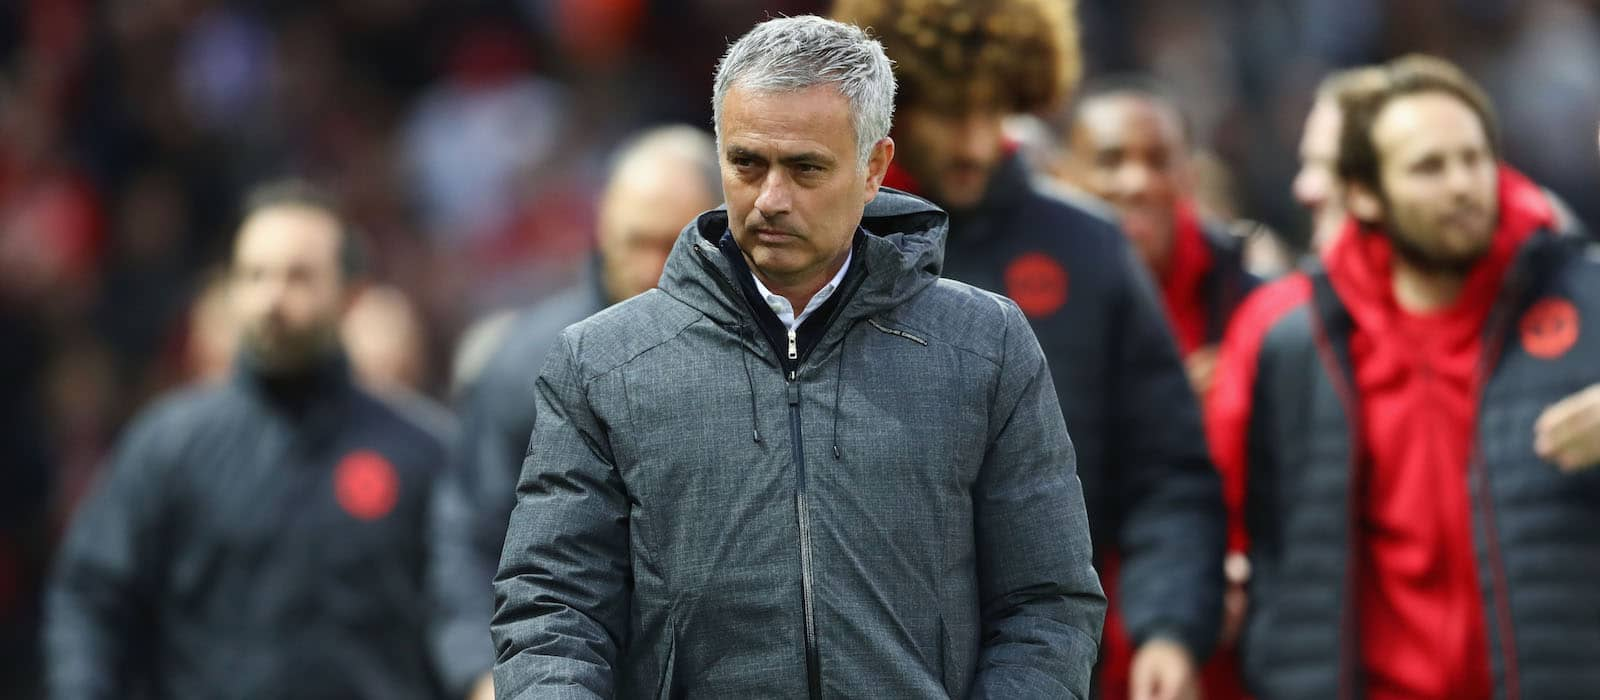 Jose Mourinho furious with fixture congestion at Manchester United